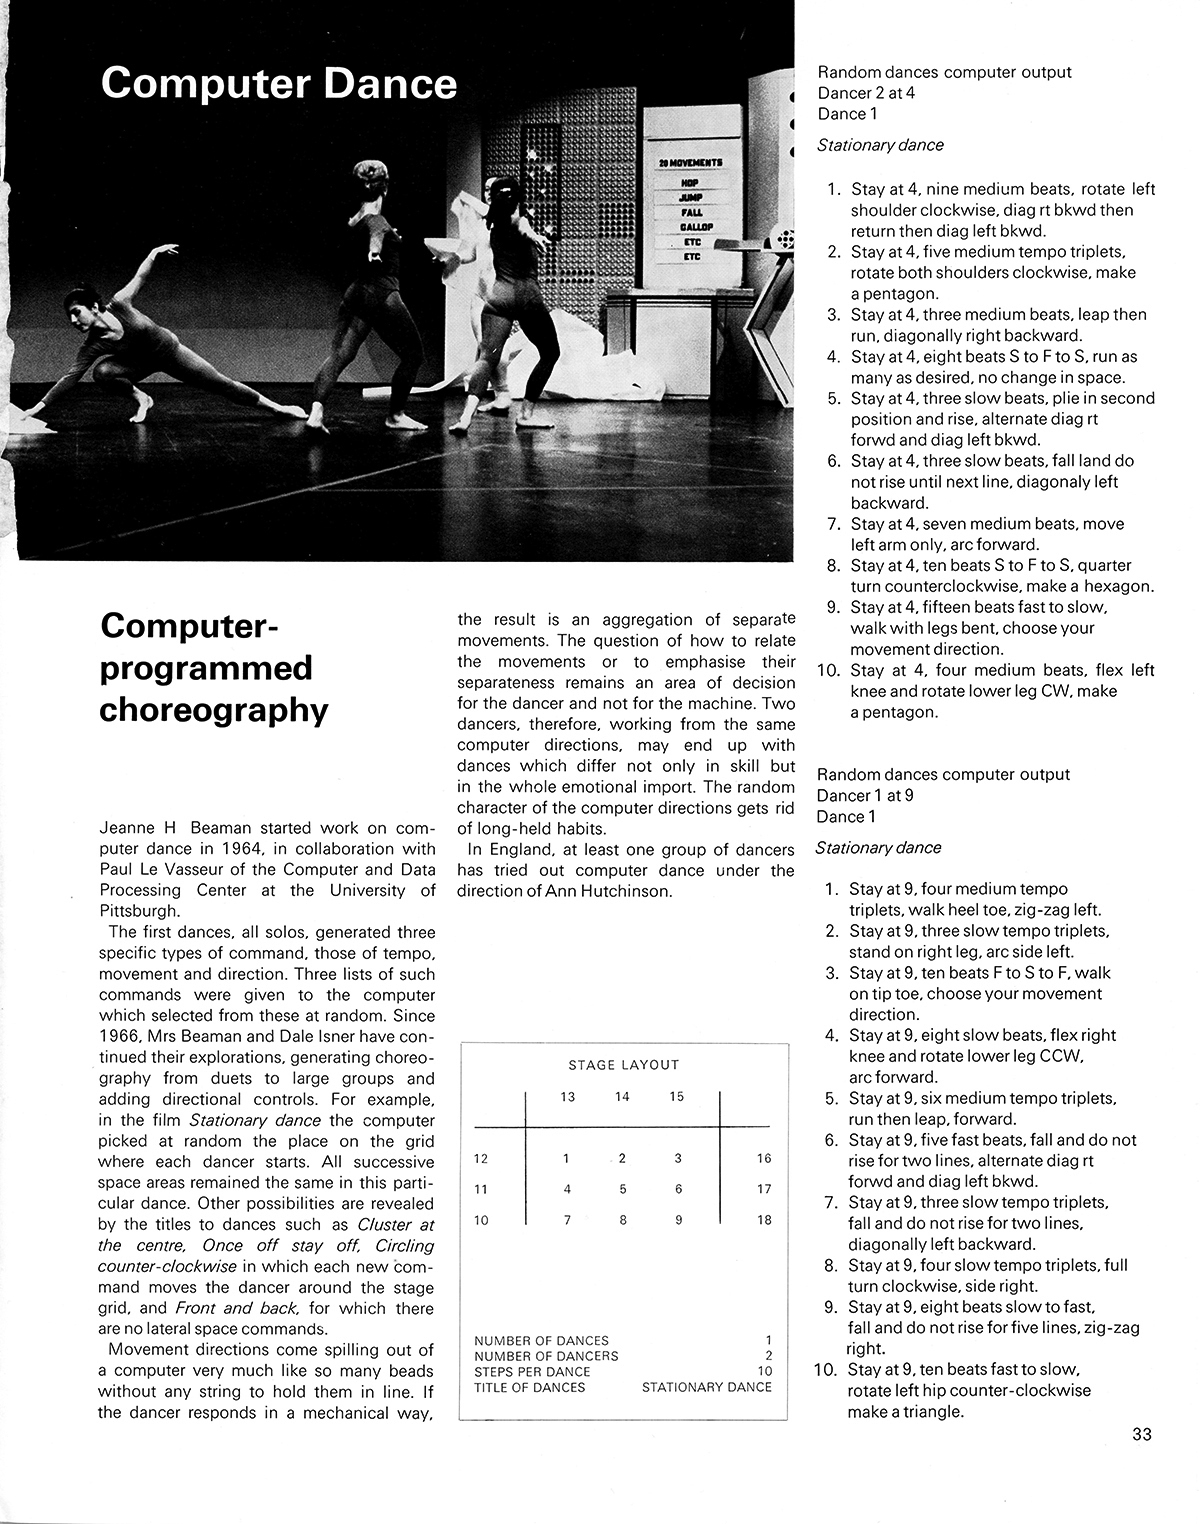 Computer Dance: Computer-programmed choreography. Cybernetic Serendipity: The Computer and the Arts, Studio International Special Issue, 1968, page 33.